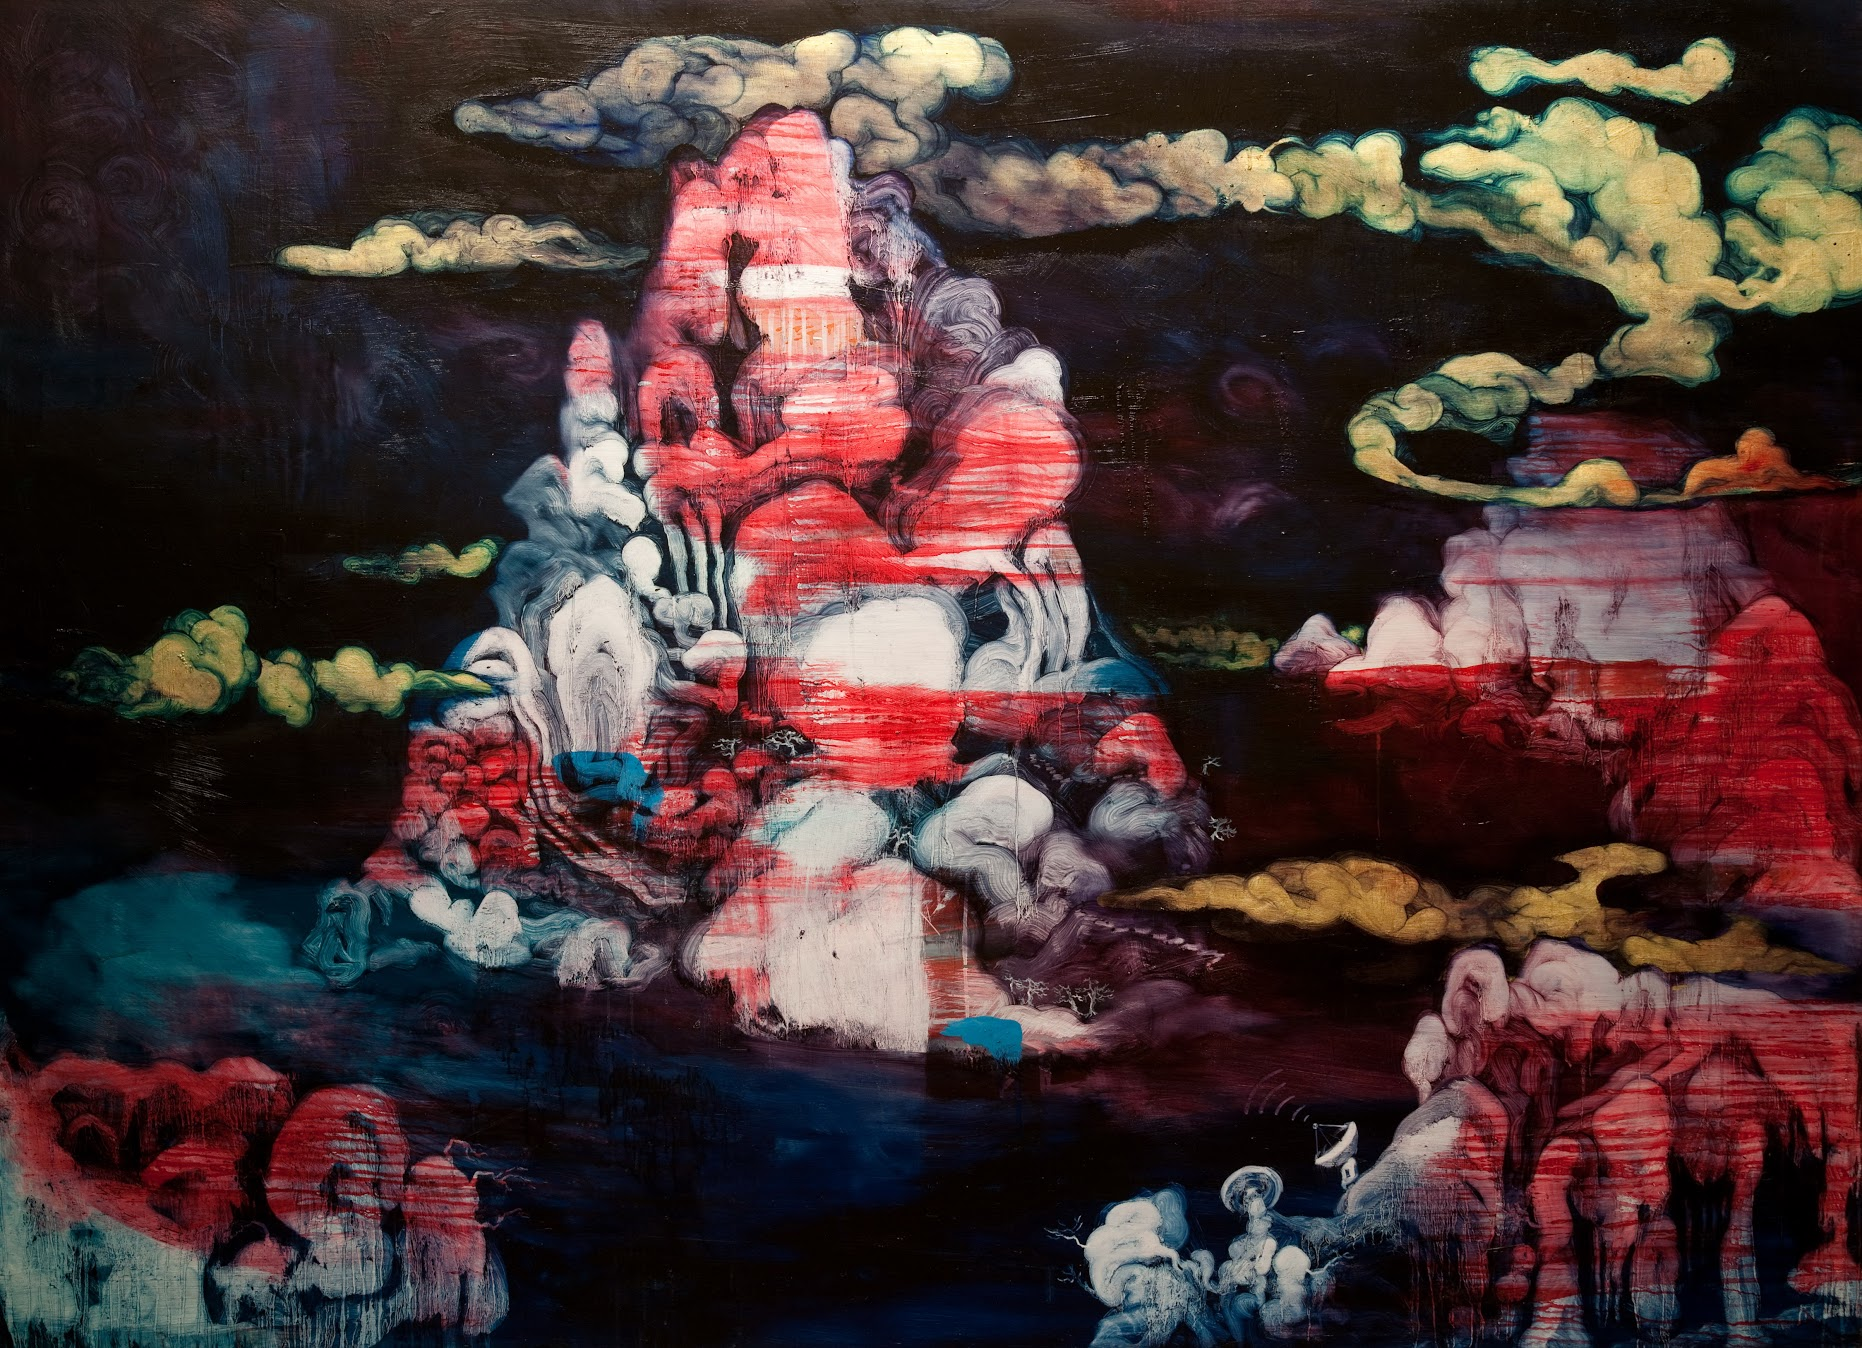 Chang-Ling, from  The Pork Belly Series: Flesh Landscape ,   2009,   oil on canvas, 145 x 200   cm.  ©  Courtesy of InSian Gallery